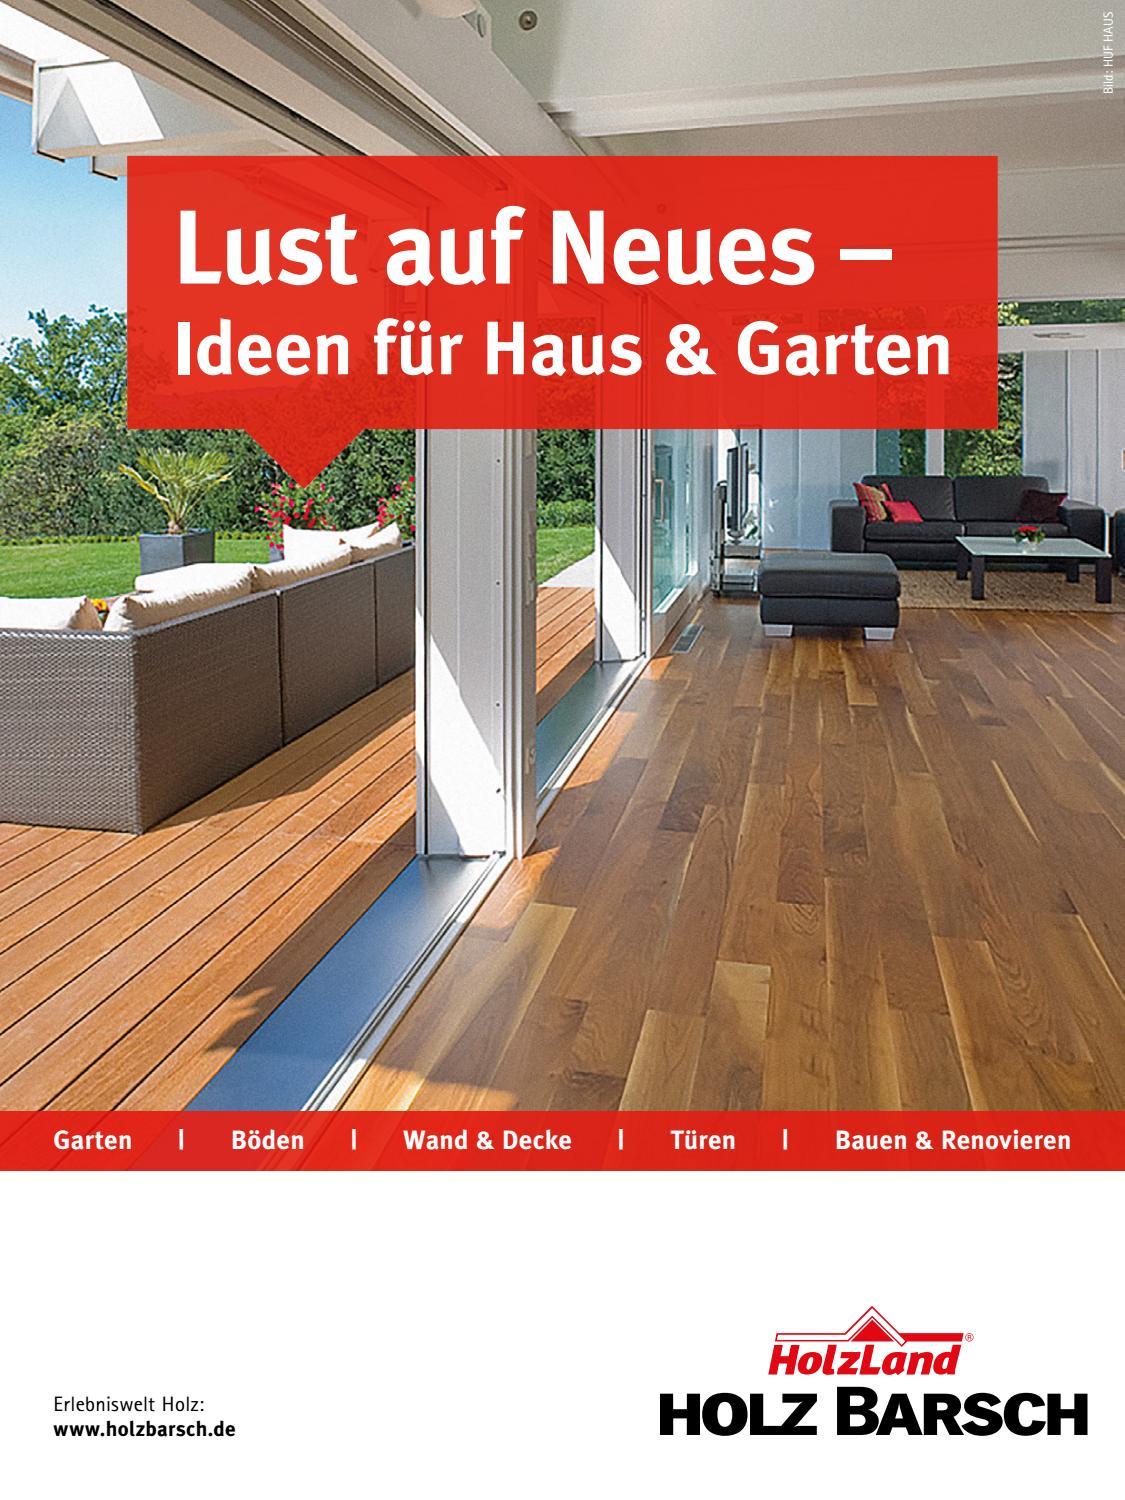 Fliesen In Holzoptik Kirsche Holz Barsch 2018 By Kaiser Design Issuu